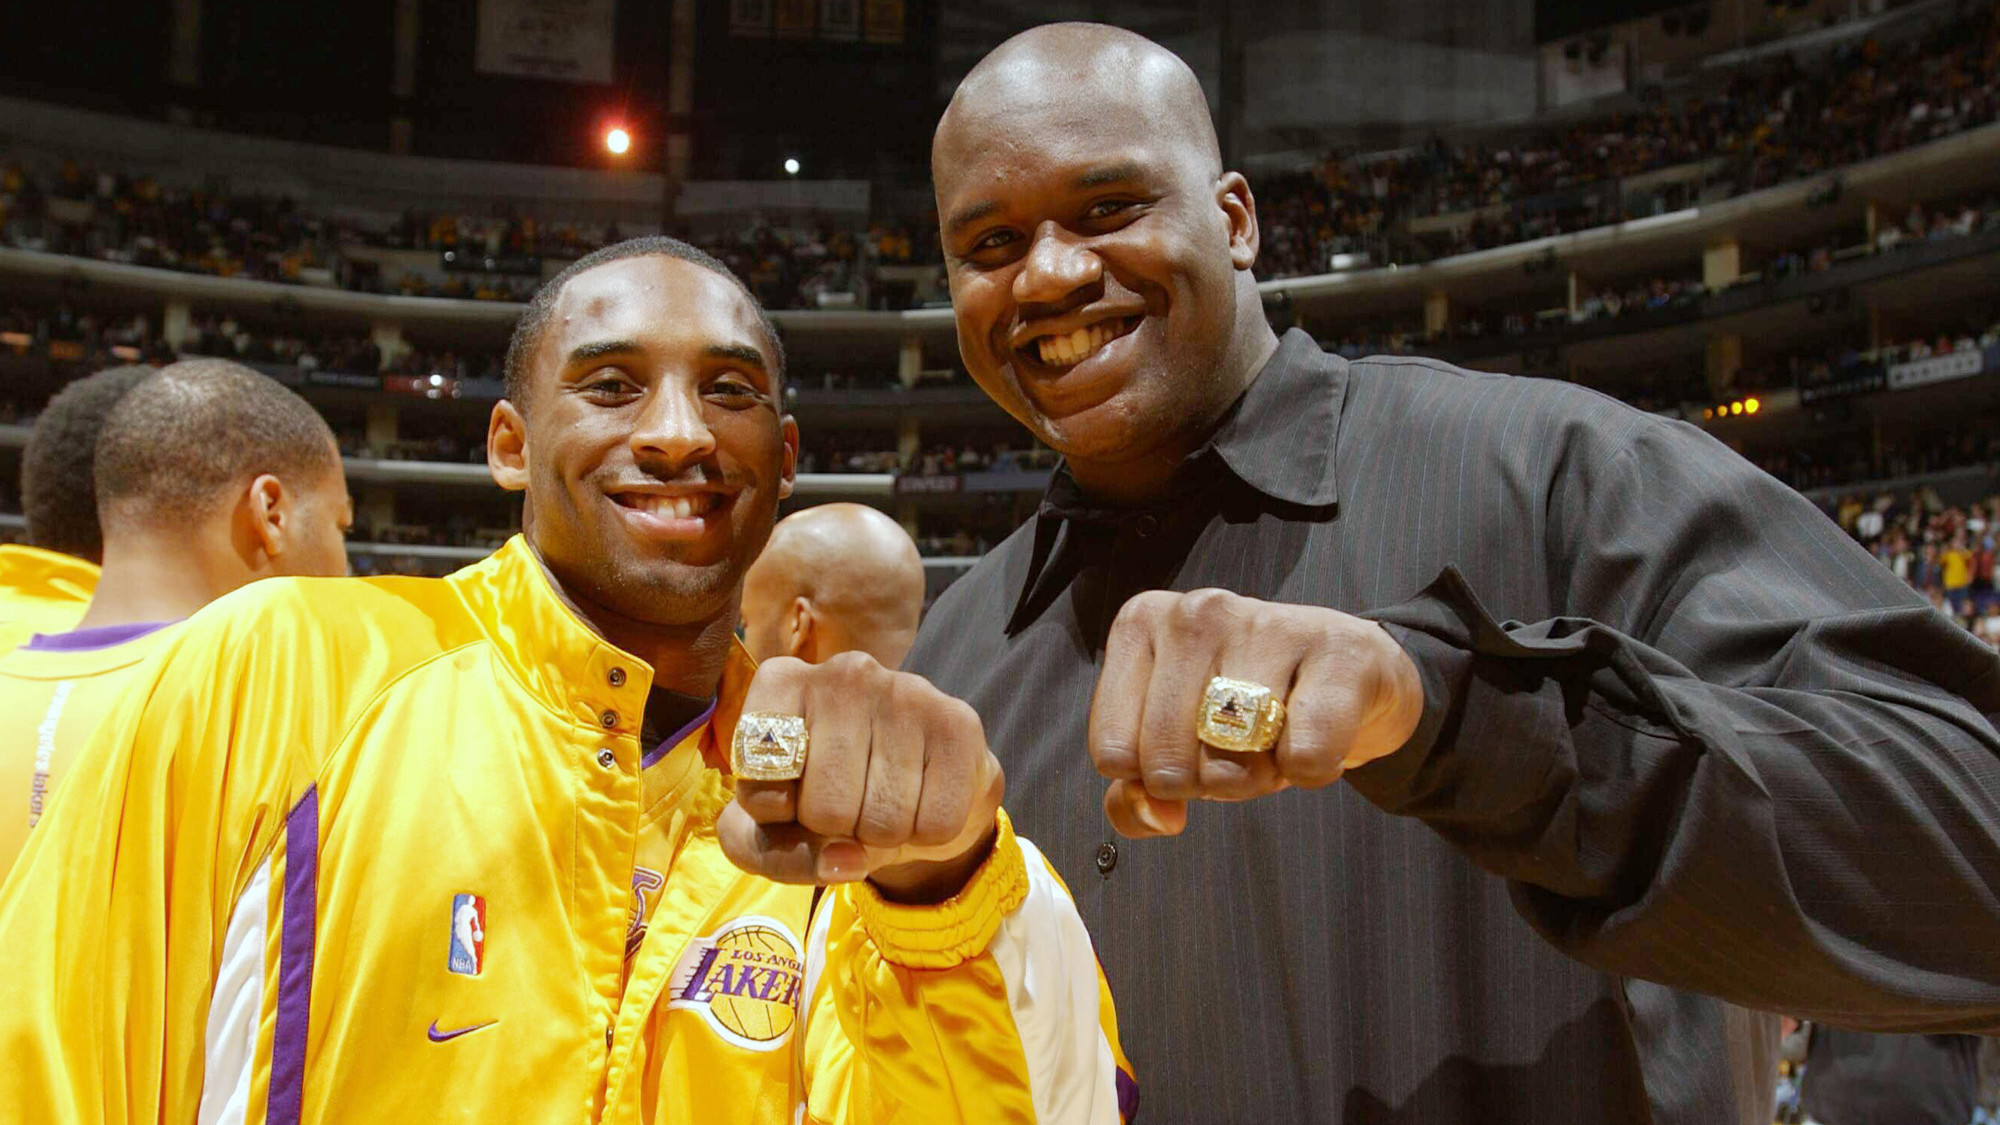 Kobe and Shaq: This team wasn't big enough for both of them, but it was amazing while it lasted ...